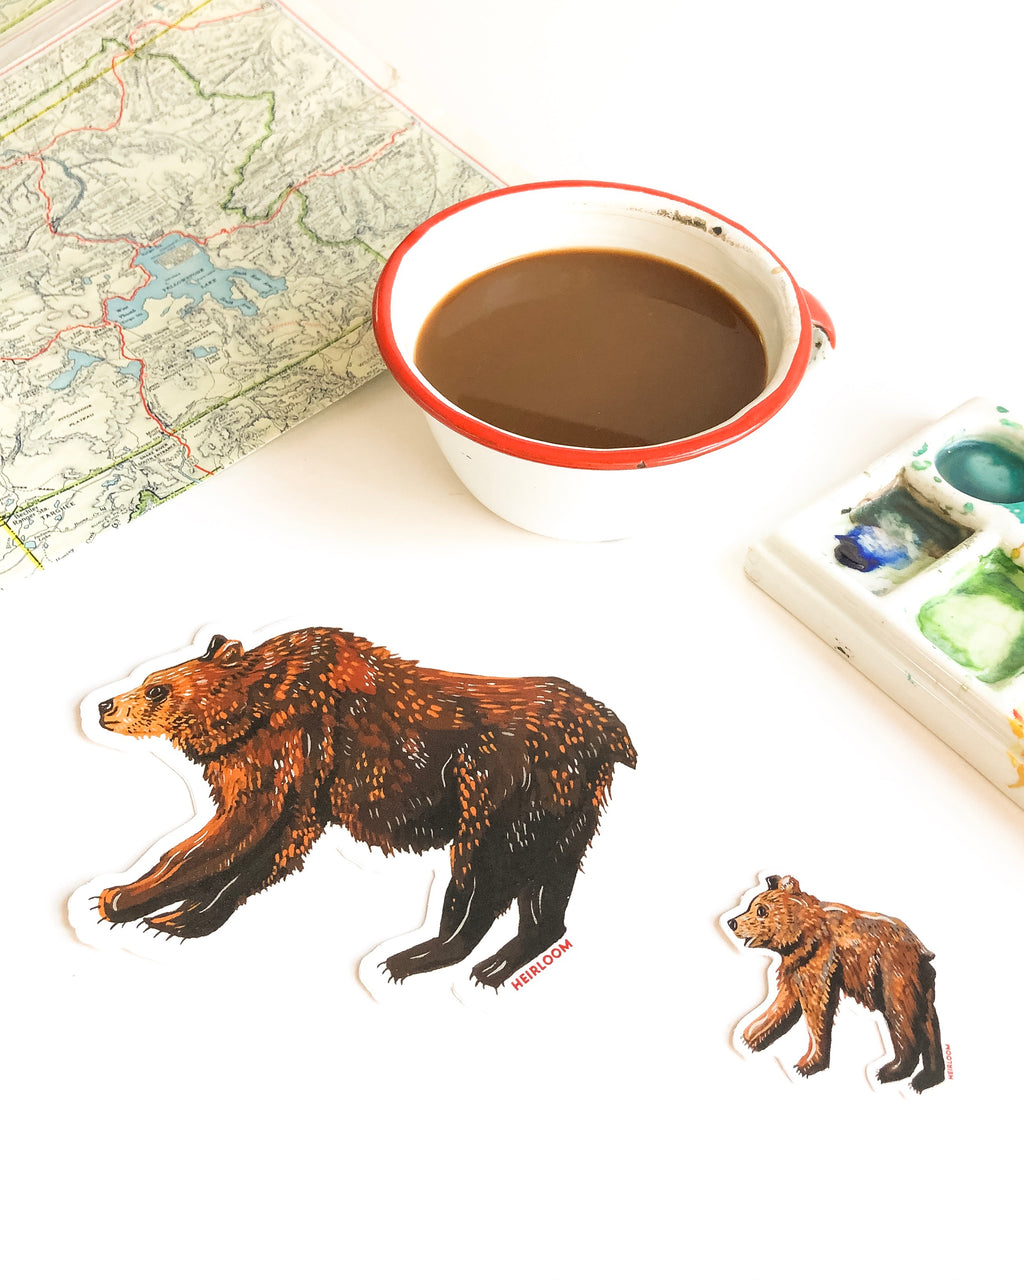 Mama Bear papa bear sticker baby bear sticker grizzly bear brown bear nature animals pacific northwest wildlife vinyl decals weatherproof water bottle stickers laptop stickers forest animals mama and baby bear